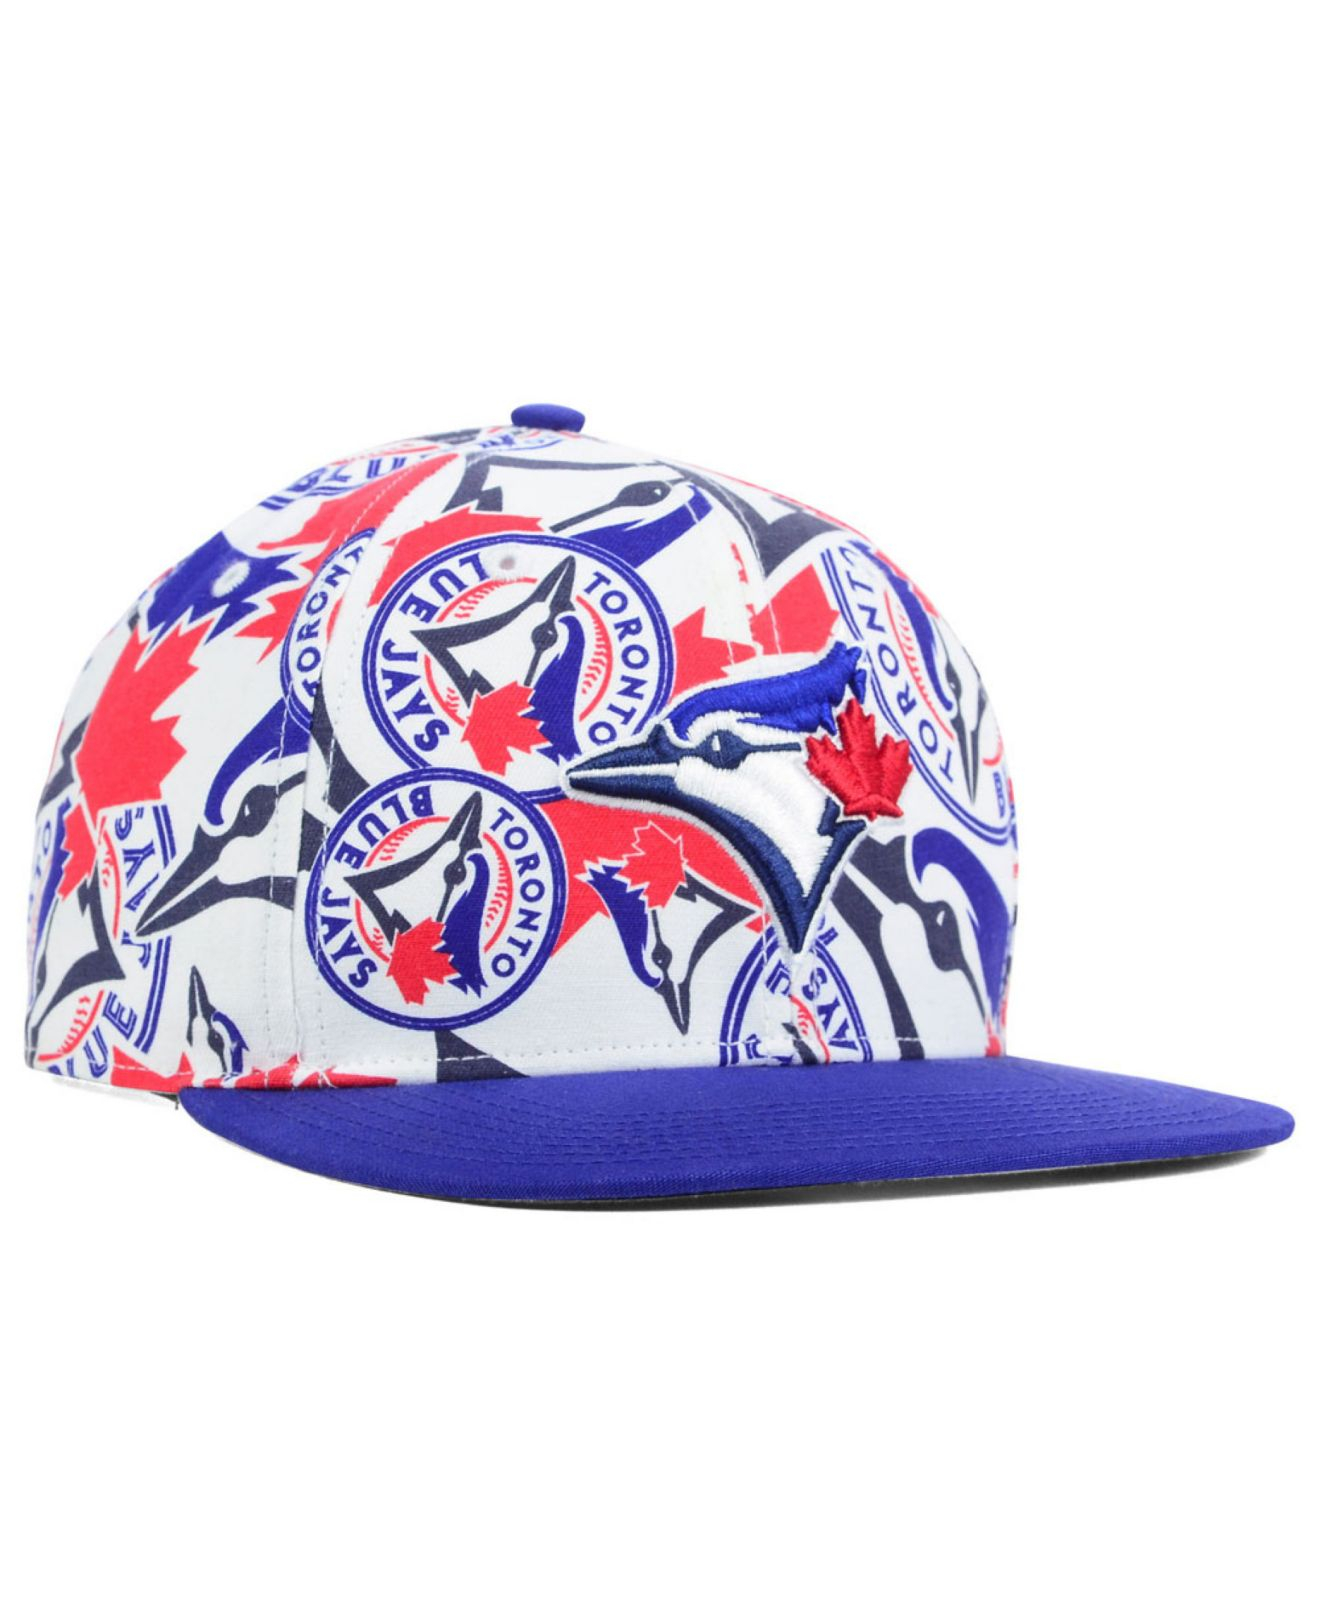 d0087547fd5fb ... hats new york mlbpersonalized 3a870 3440e  inexpensive lyst 47 brand  toronto blue jays snapback cap in white for men d3044 5812c